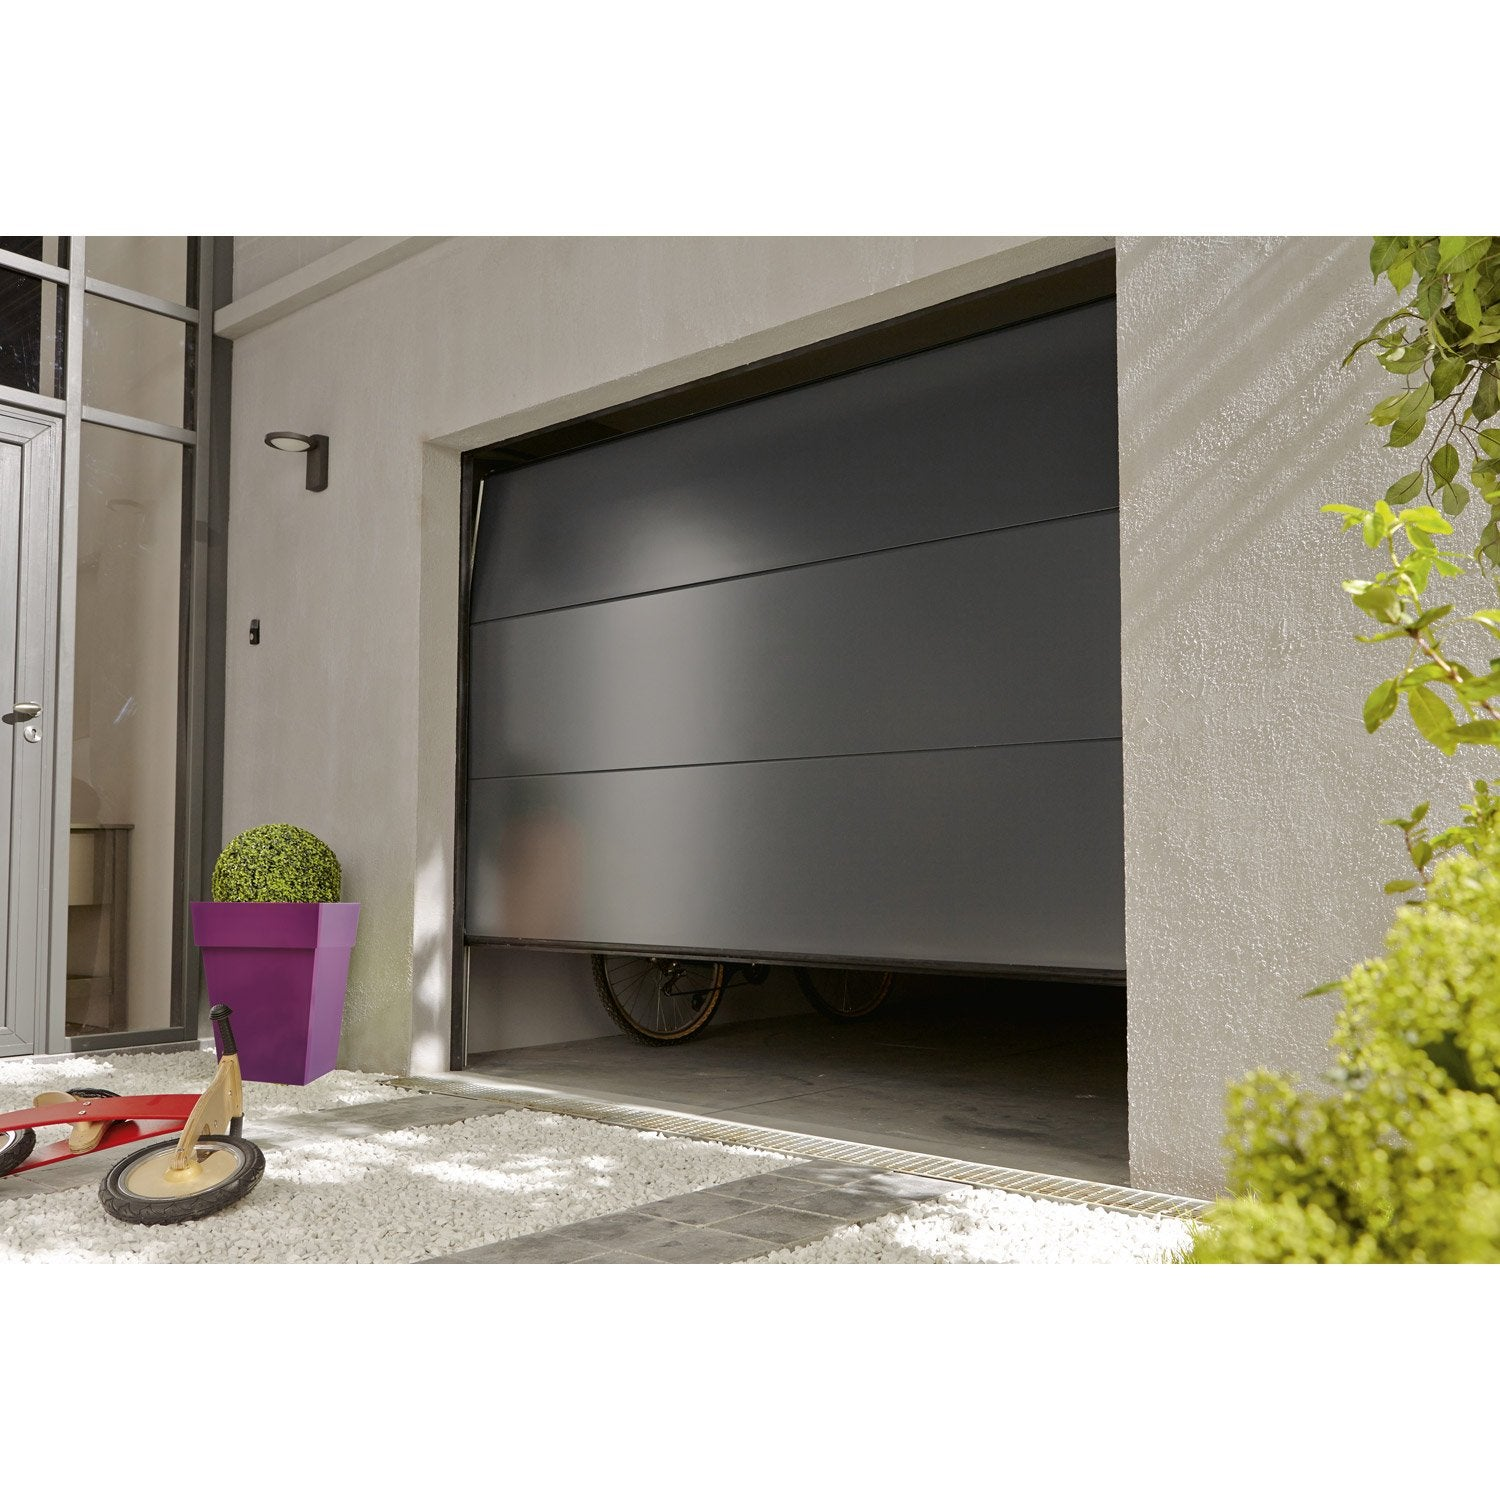 Porte de garage sectionelle palma acier gris anthracite for Porte garage hauteur 2m50